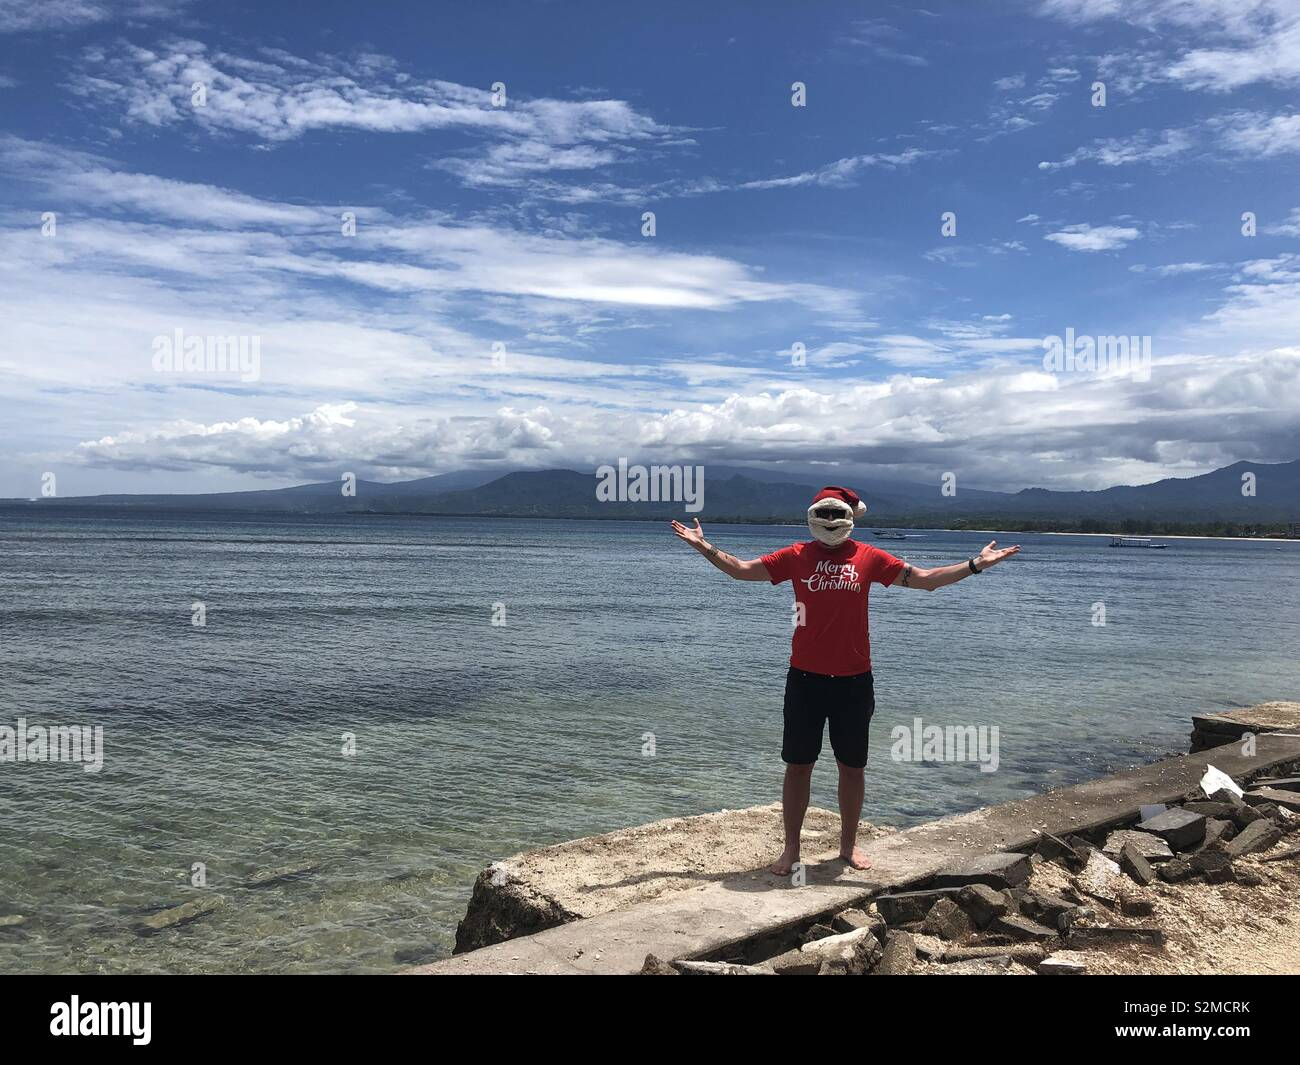 Christmas in Gili Air - Stock Image